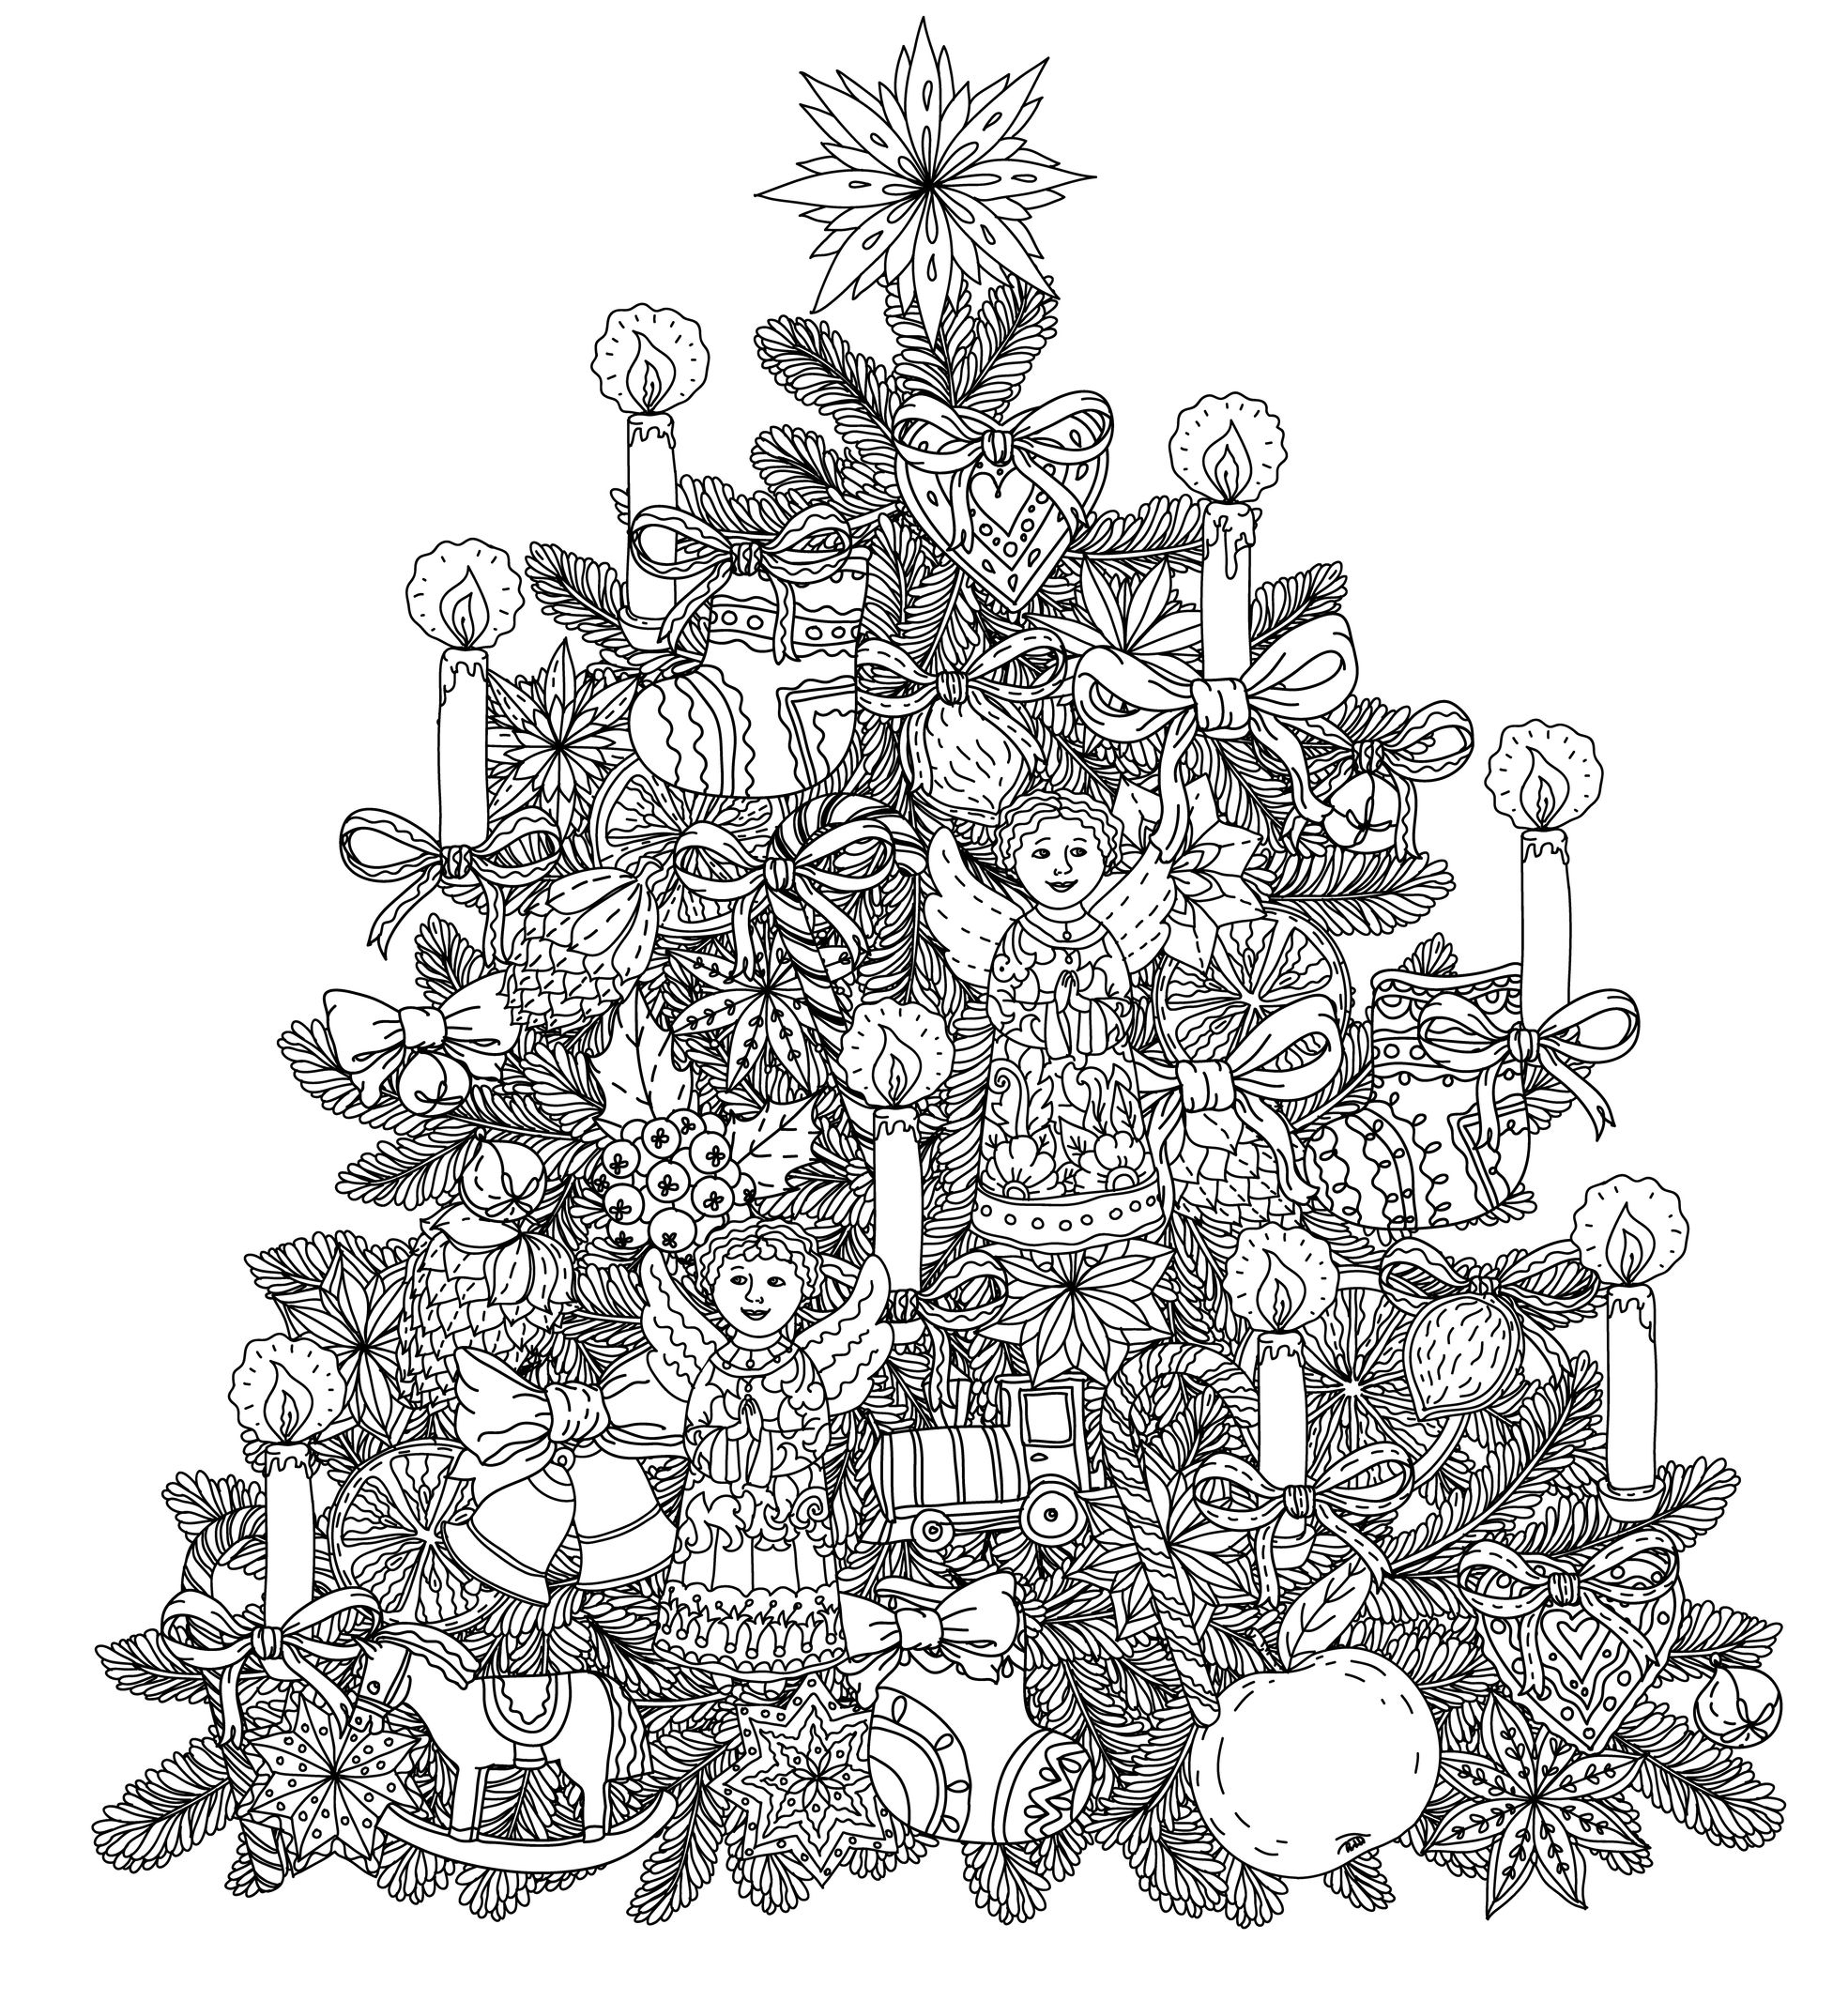 Christmas Tree With Ornaments - Christmas Adult Coloring Pages - Free Printable Christmas Tree Ornaments Coloring Pages